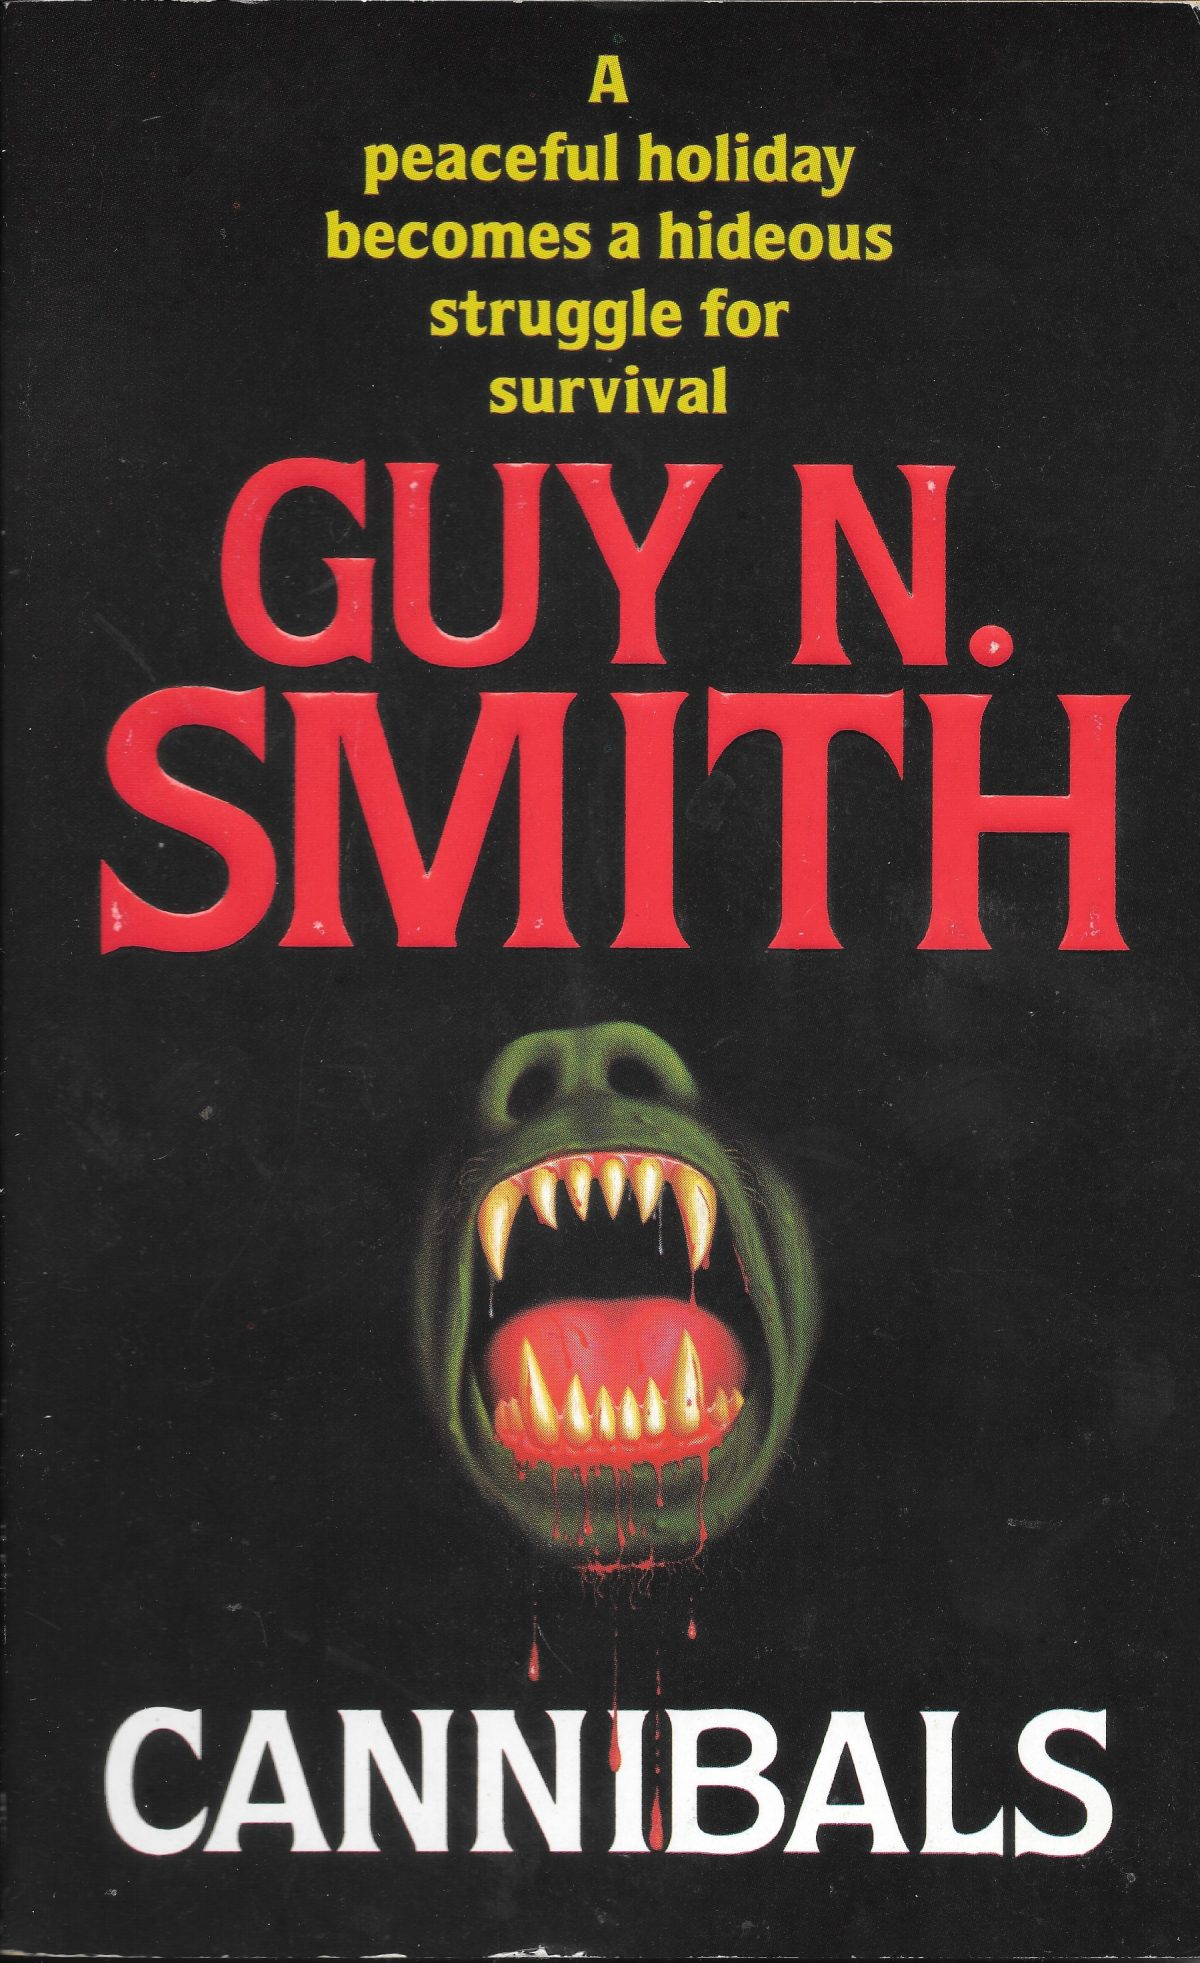 Guy N Smith, horror fictions, horror, books, Cannibals